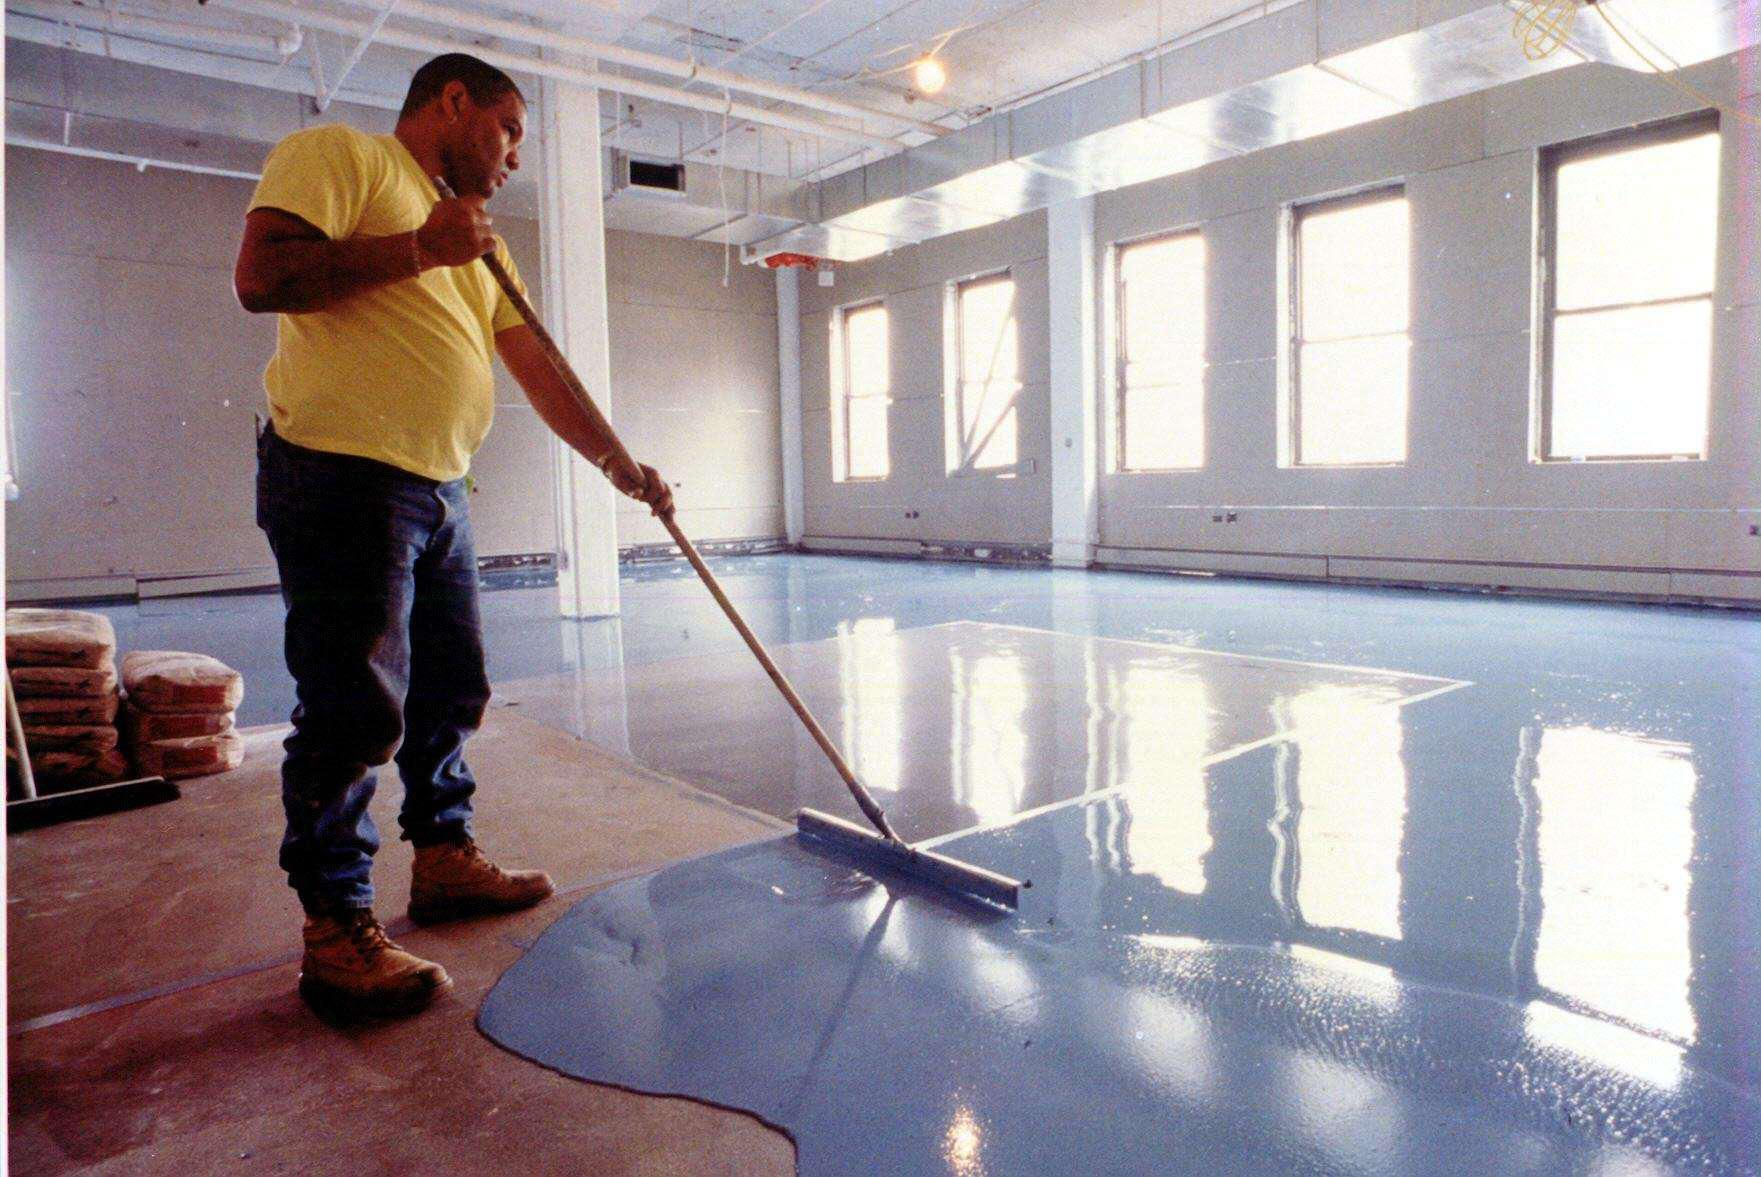 ... Man In Yellow Applies Blue Epoxy Paint To Basement Floor